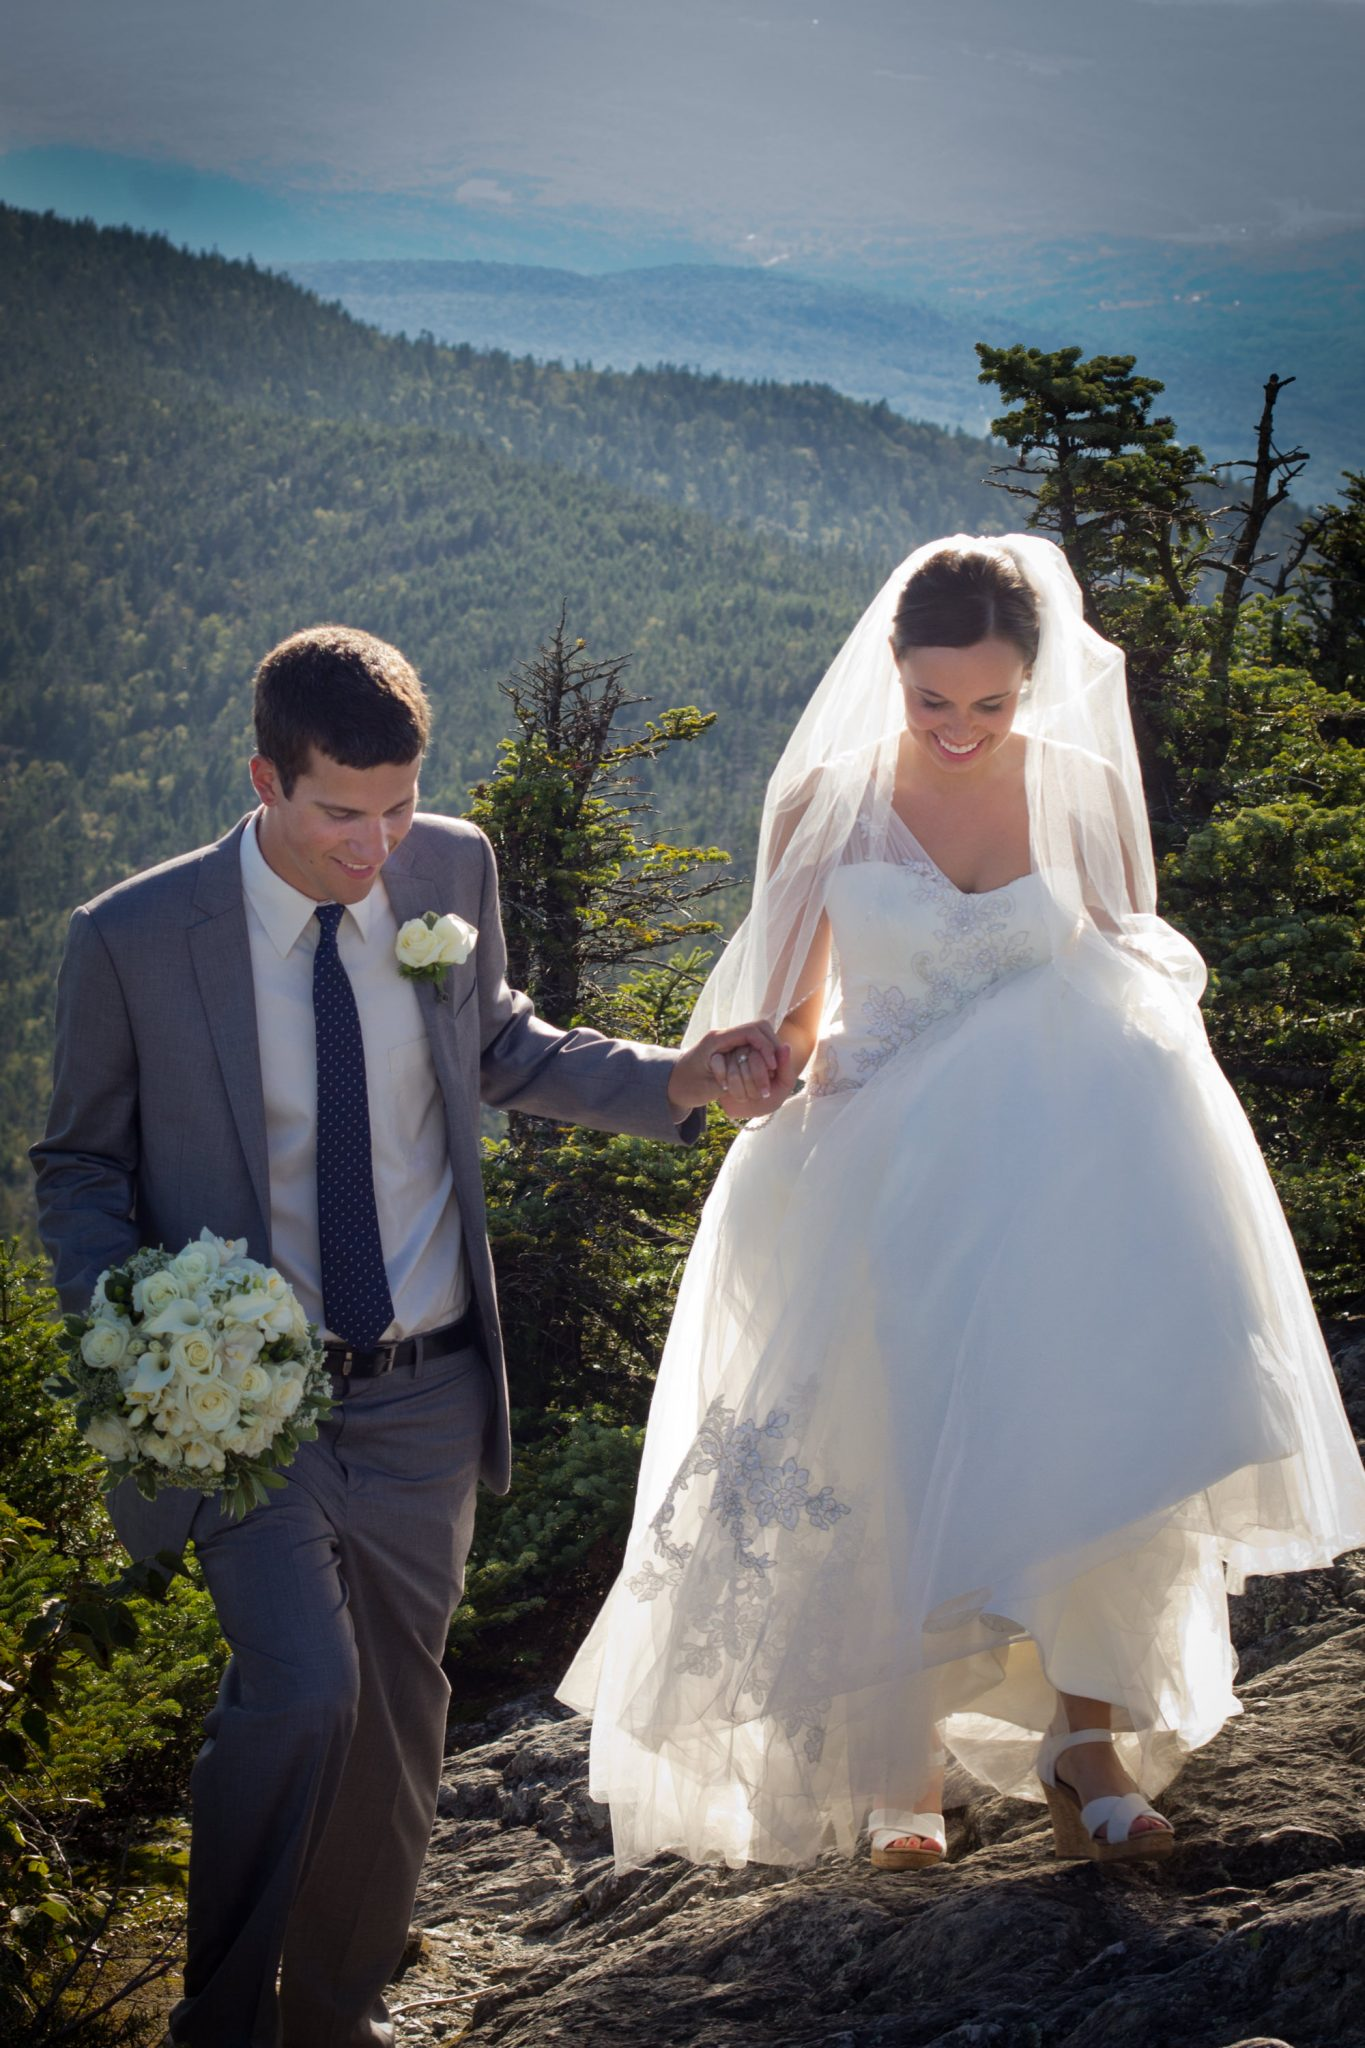 Couple climbs mountain at wedding candid portrait at Jay Peak in Vermont